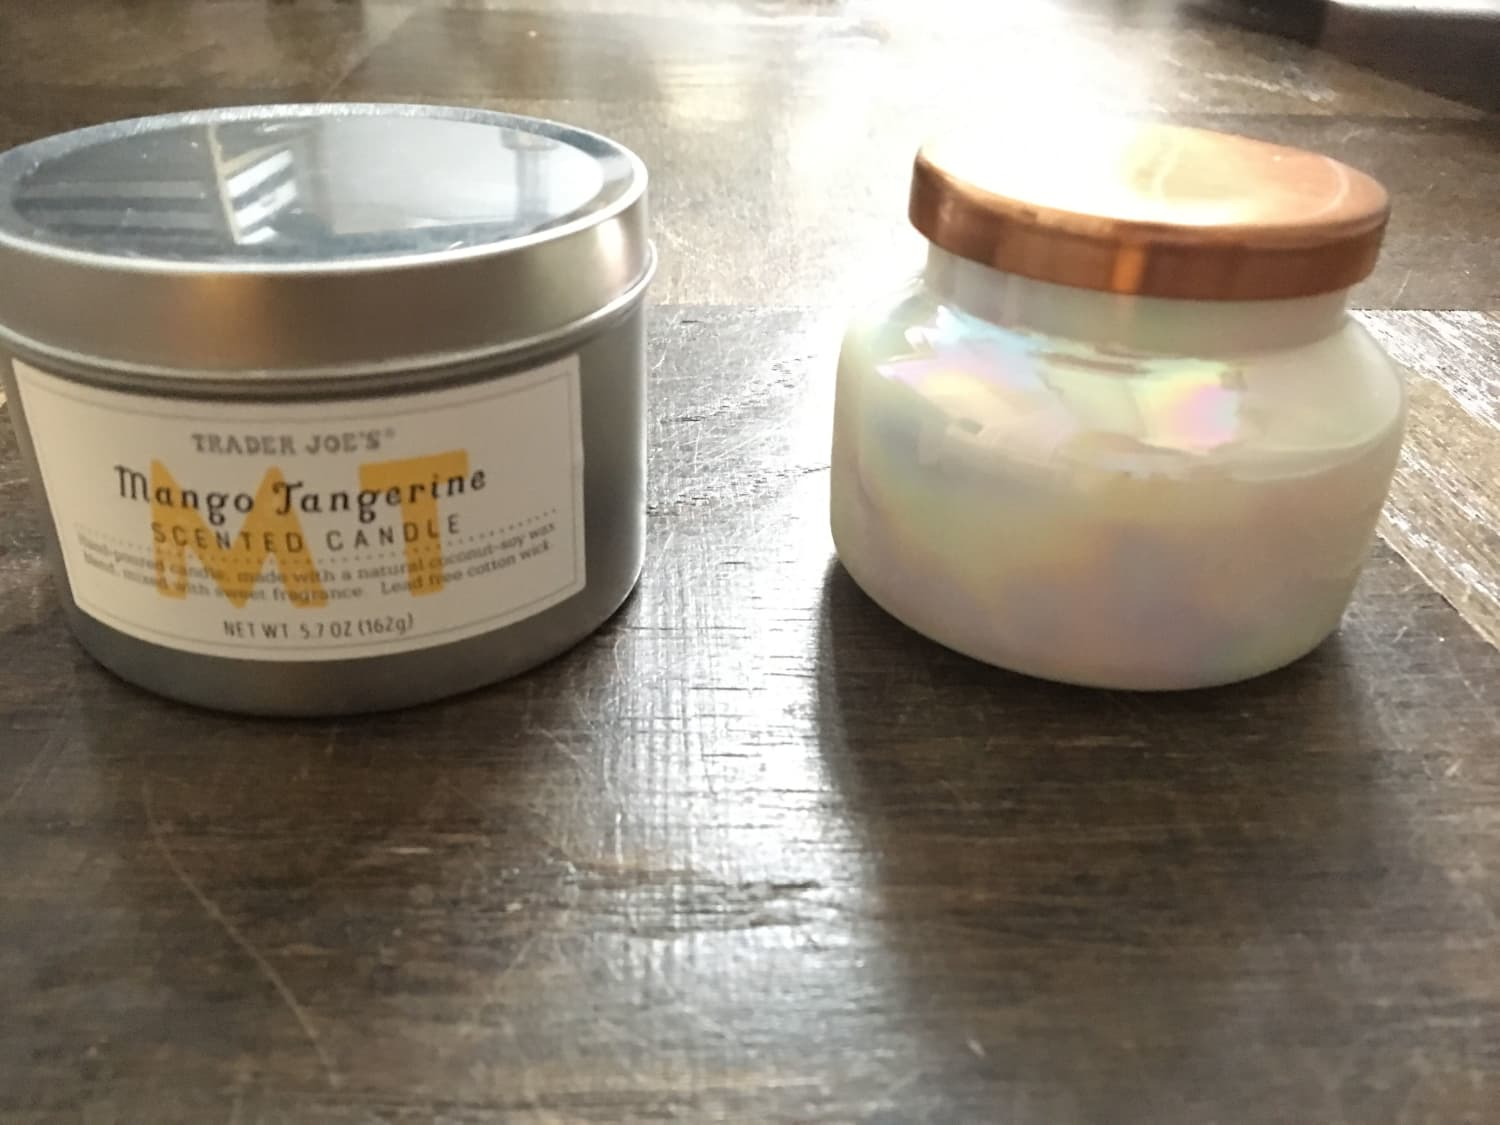 Is This $4 Trader Joe's Candle a Dupe for Anthropologie's Cult-Favorite Volcano Candle?